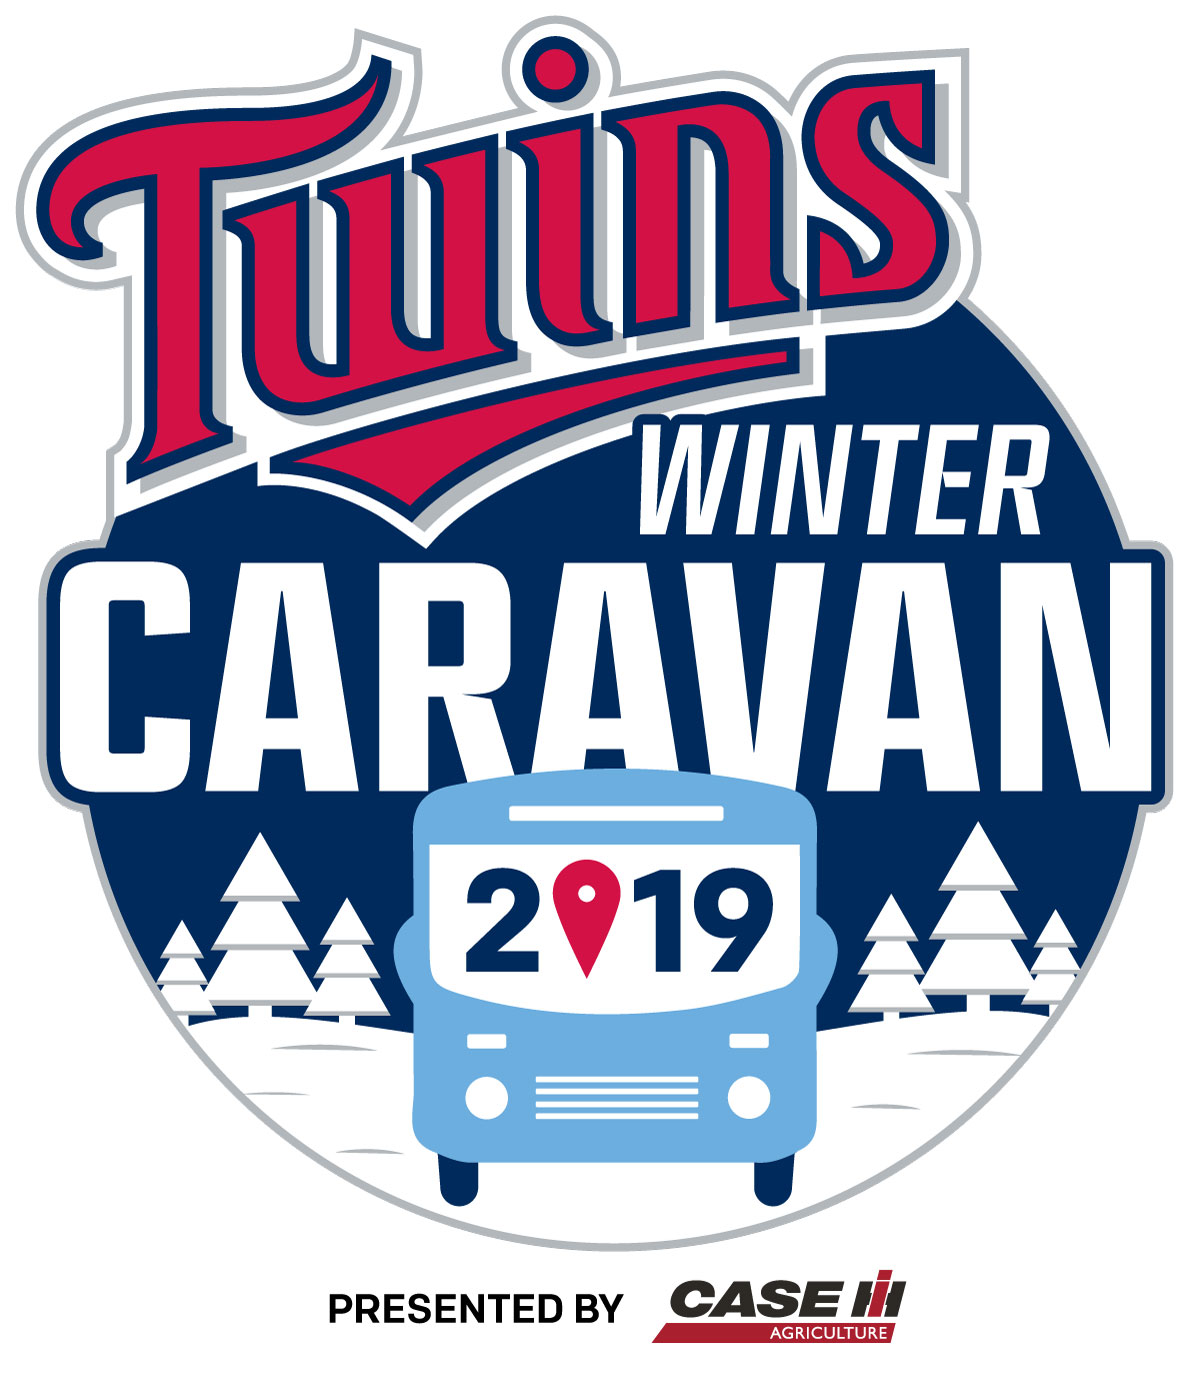 2019-Twins-Winter-Caravan-logo_FINAL.JPG